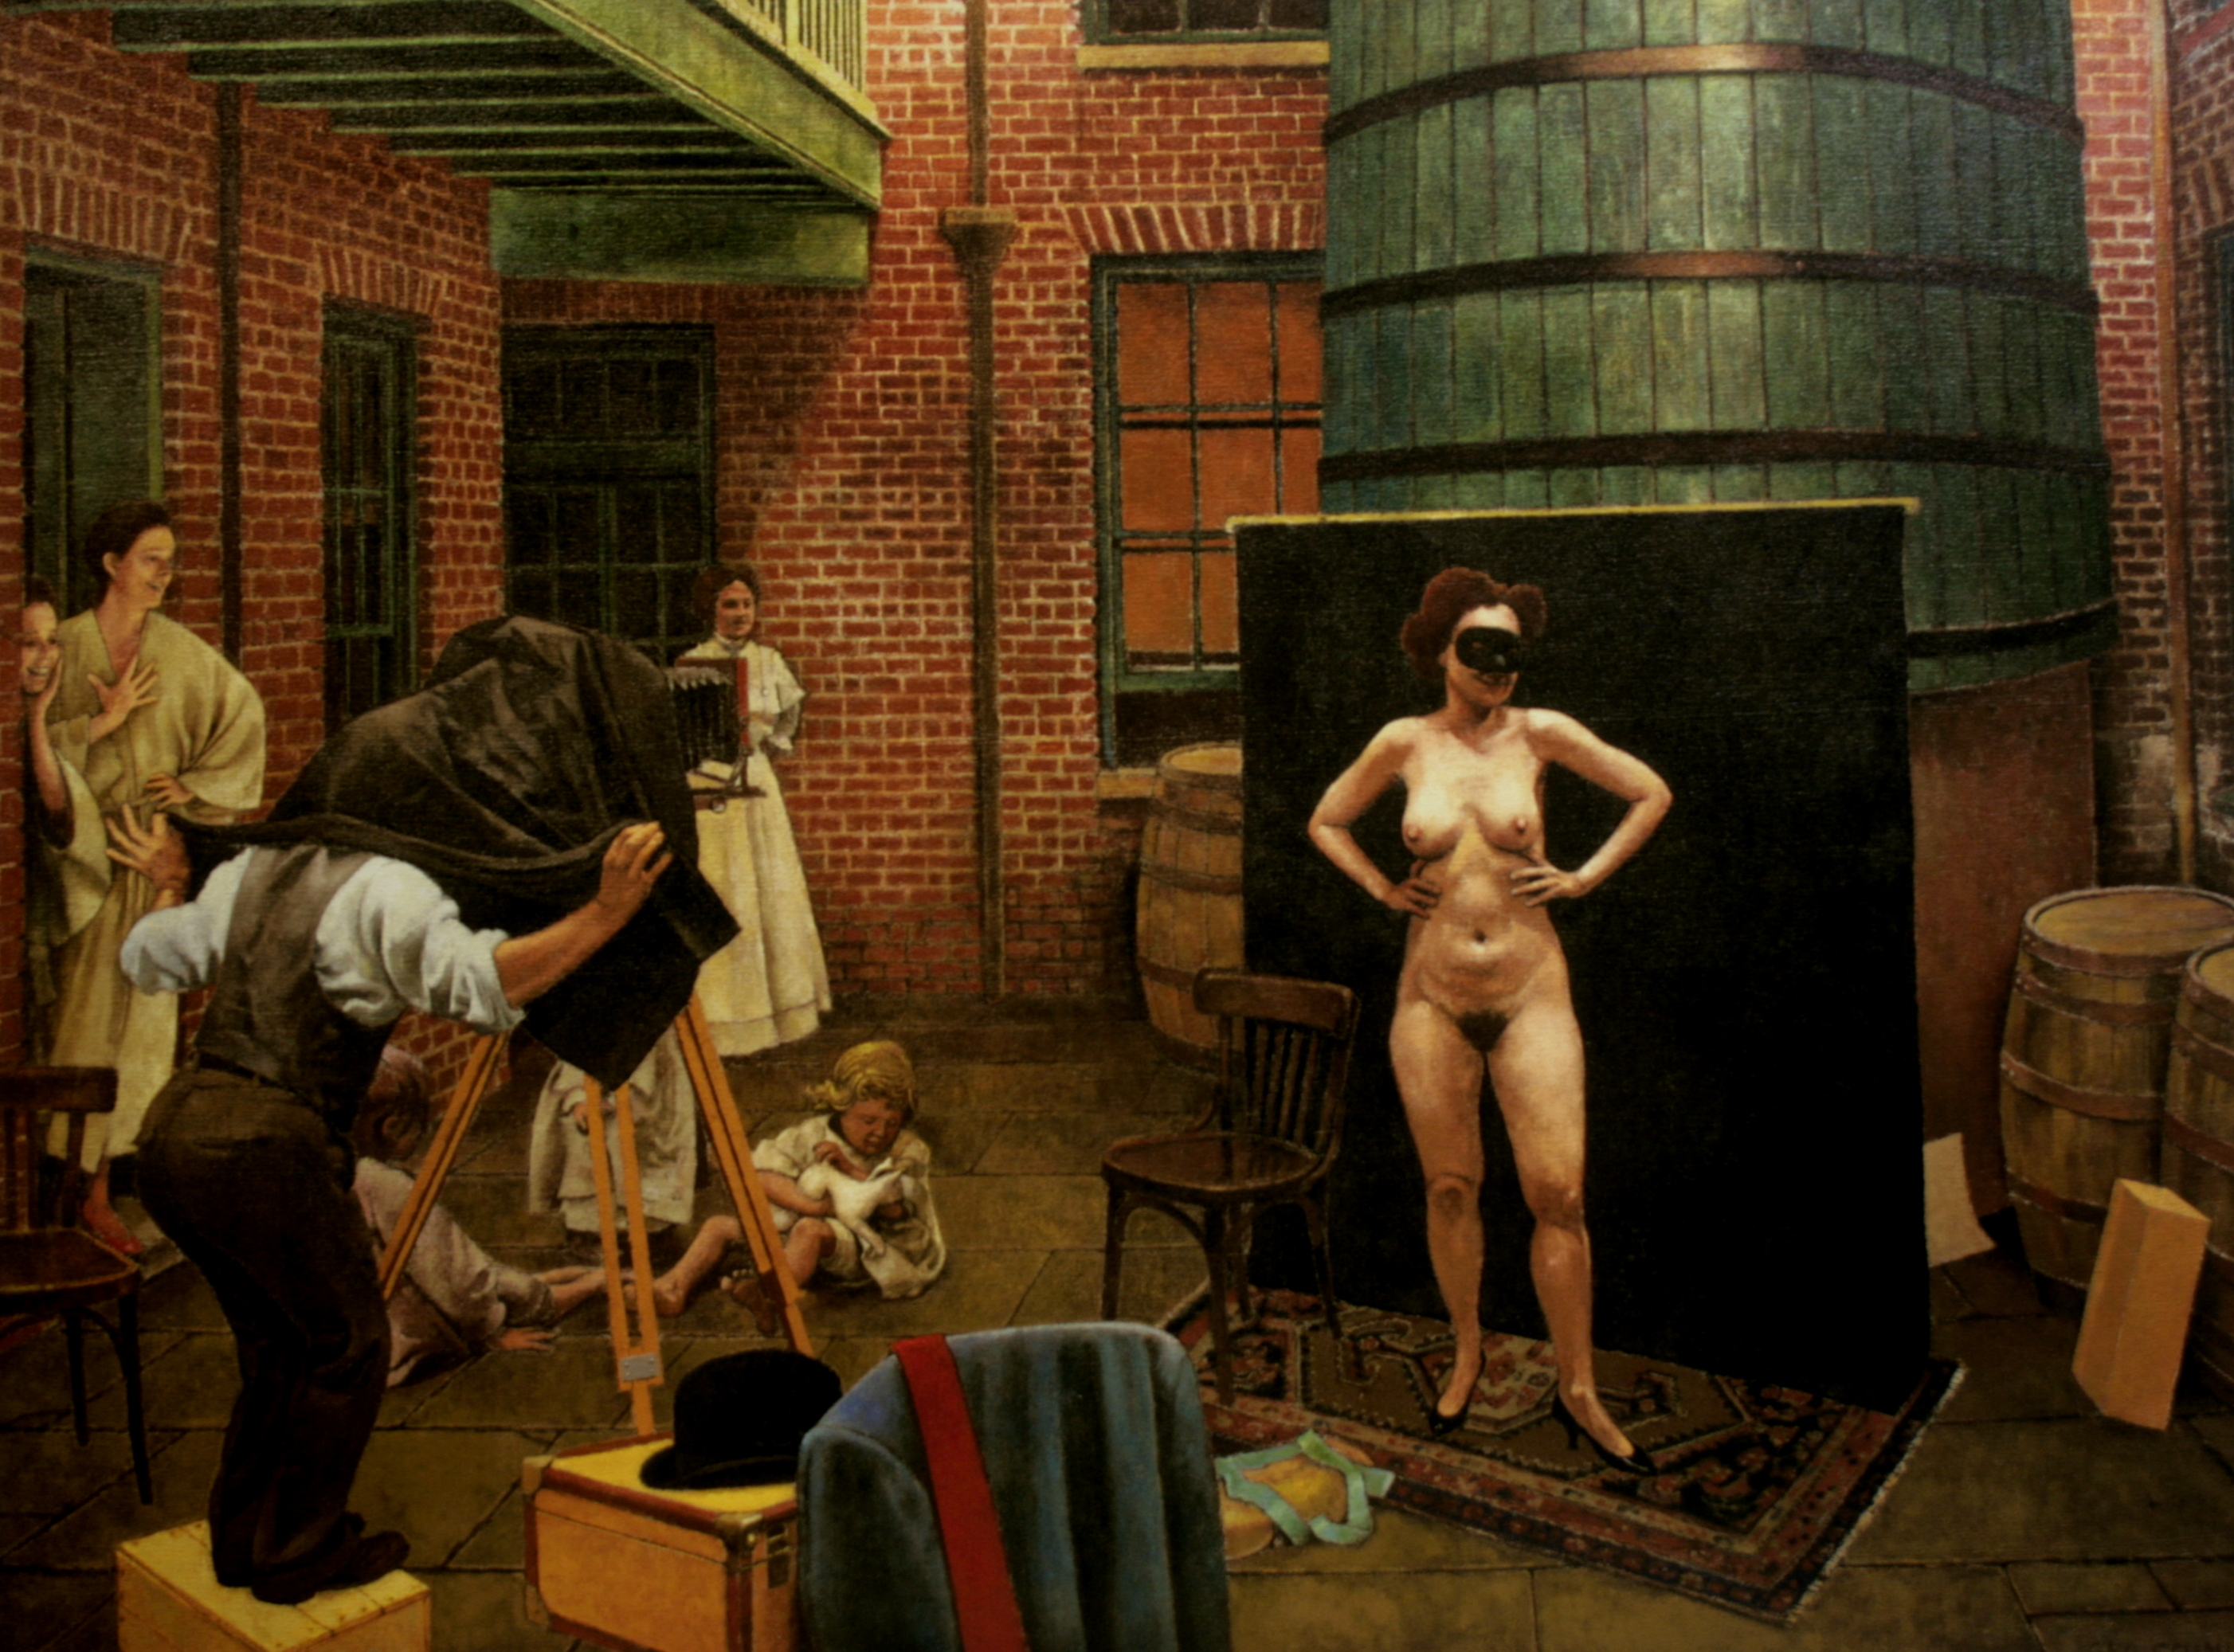 Ernest Bellocq Photographing a Prostitute New Orleans :: Oil on Linen